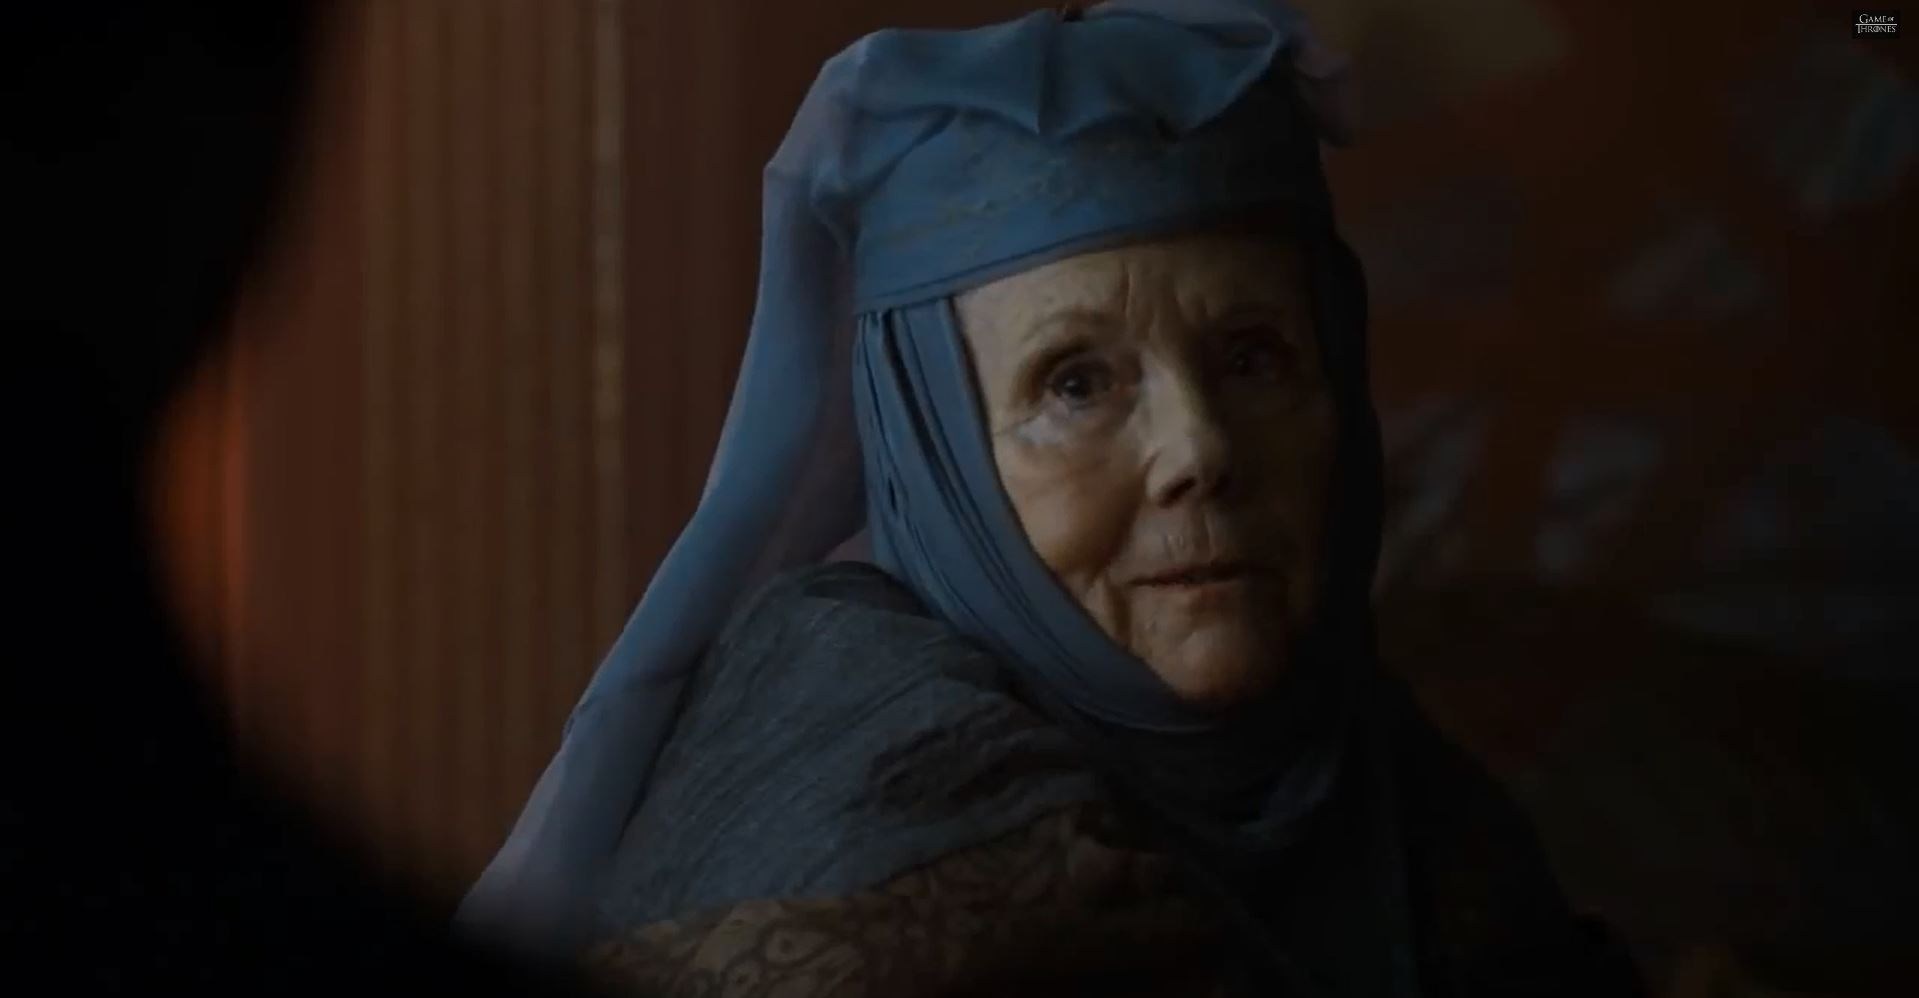 Game Of Thrones Season 5 Preview. Diana Rigg as Lady Olenna Tyrell